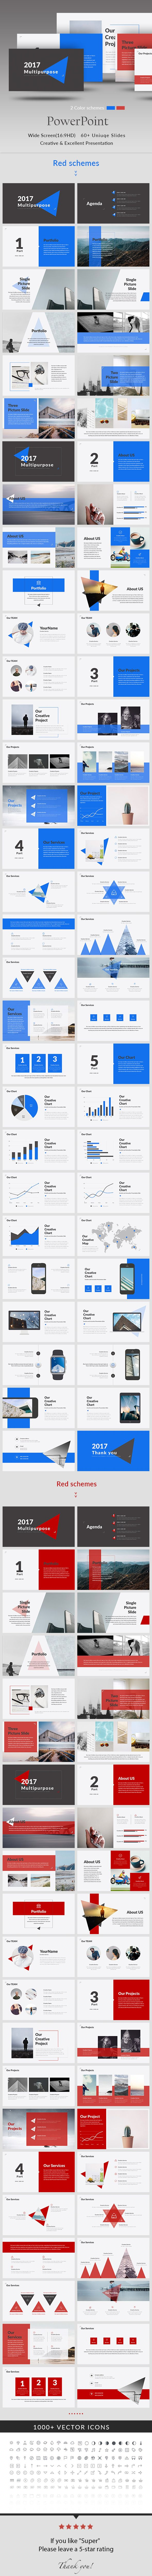 best 25+ free ppt template ideas on pinterest | powerpoint, Powerpoint templates